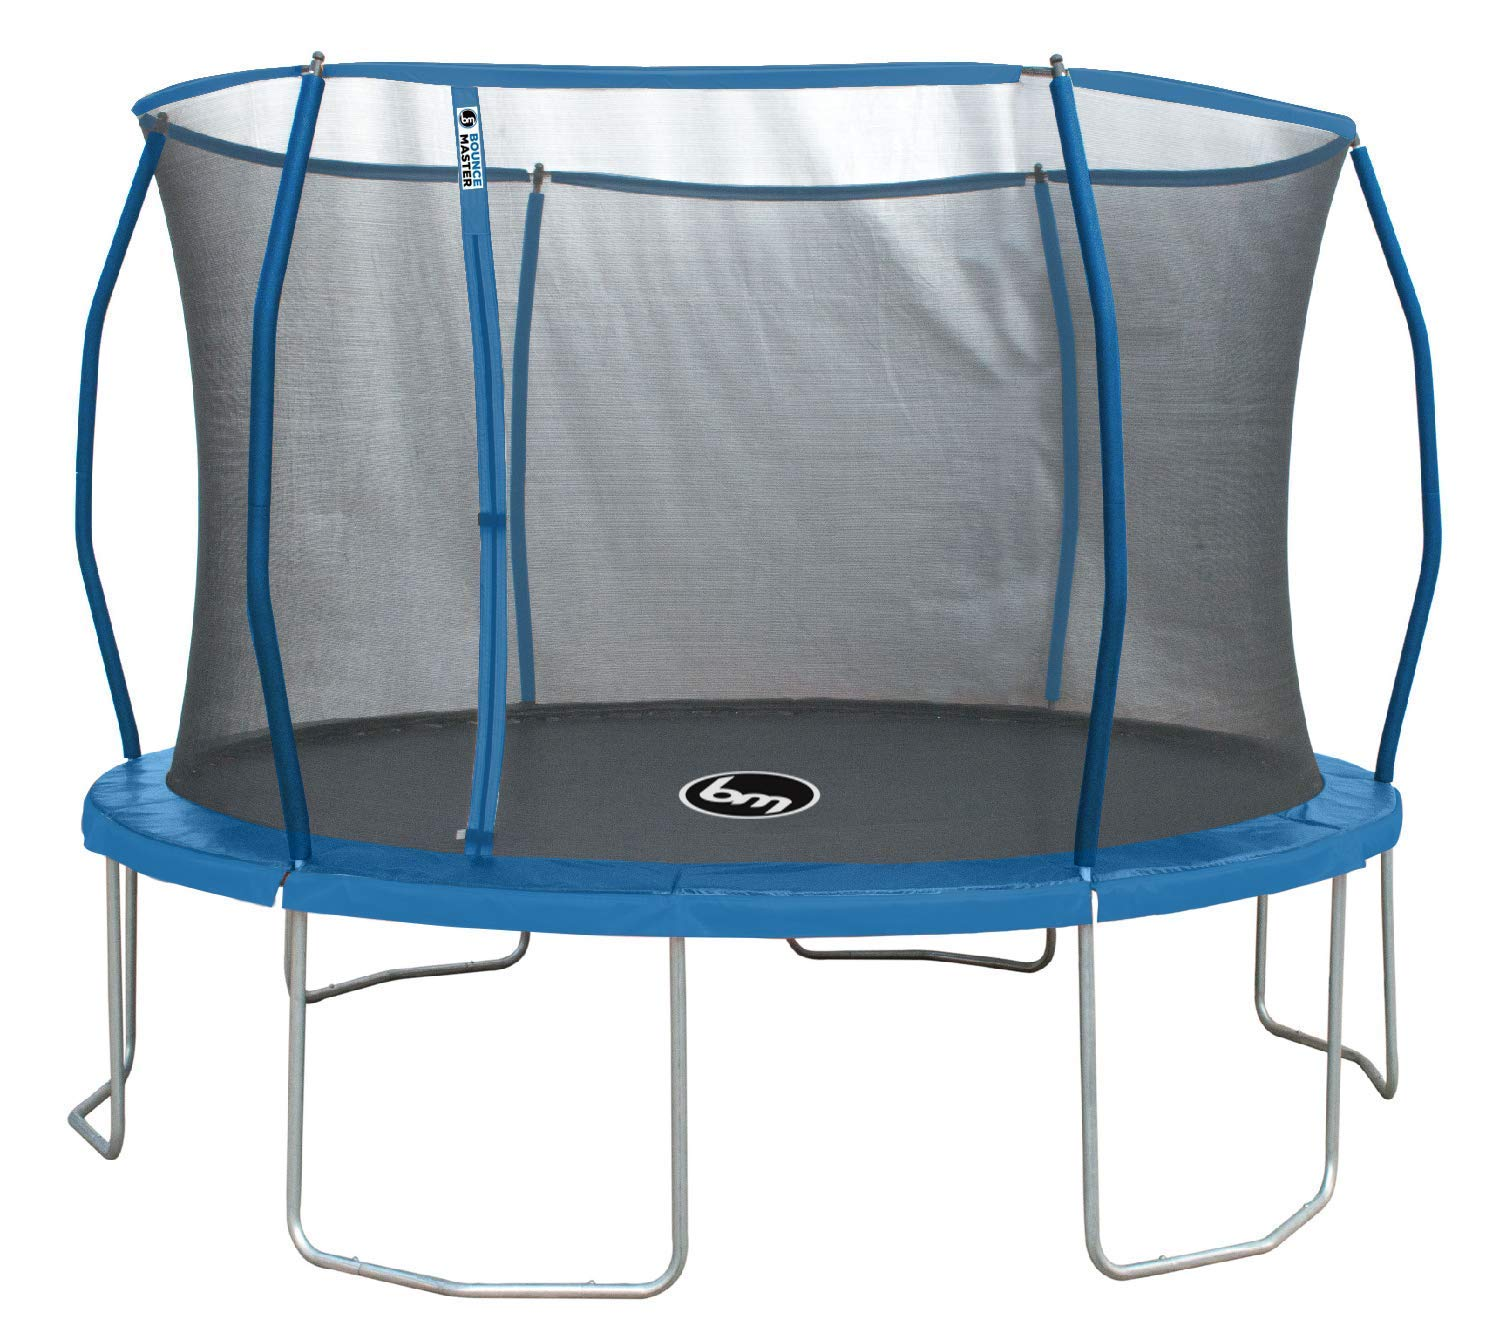 Bounce Master 12' Trampoline with Enclosure